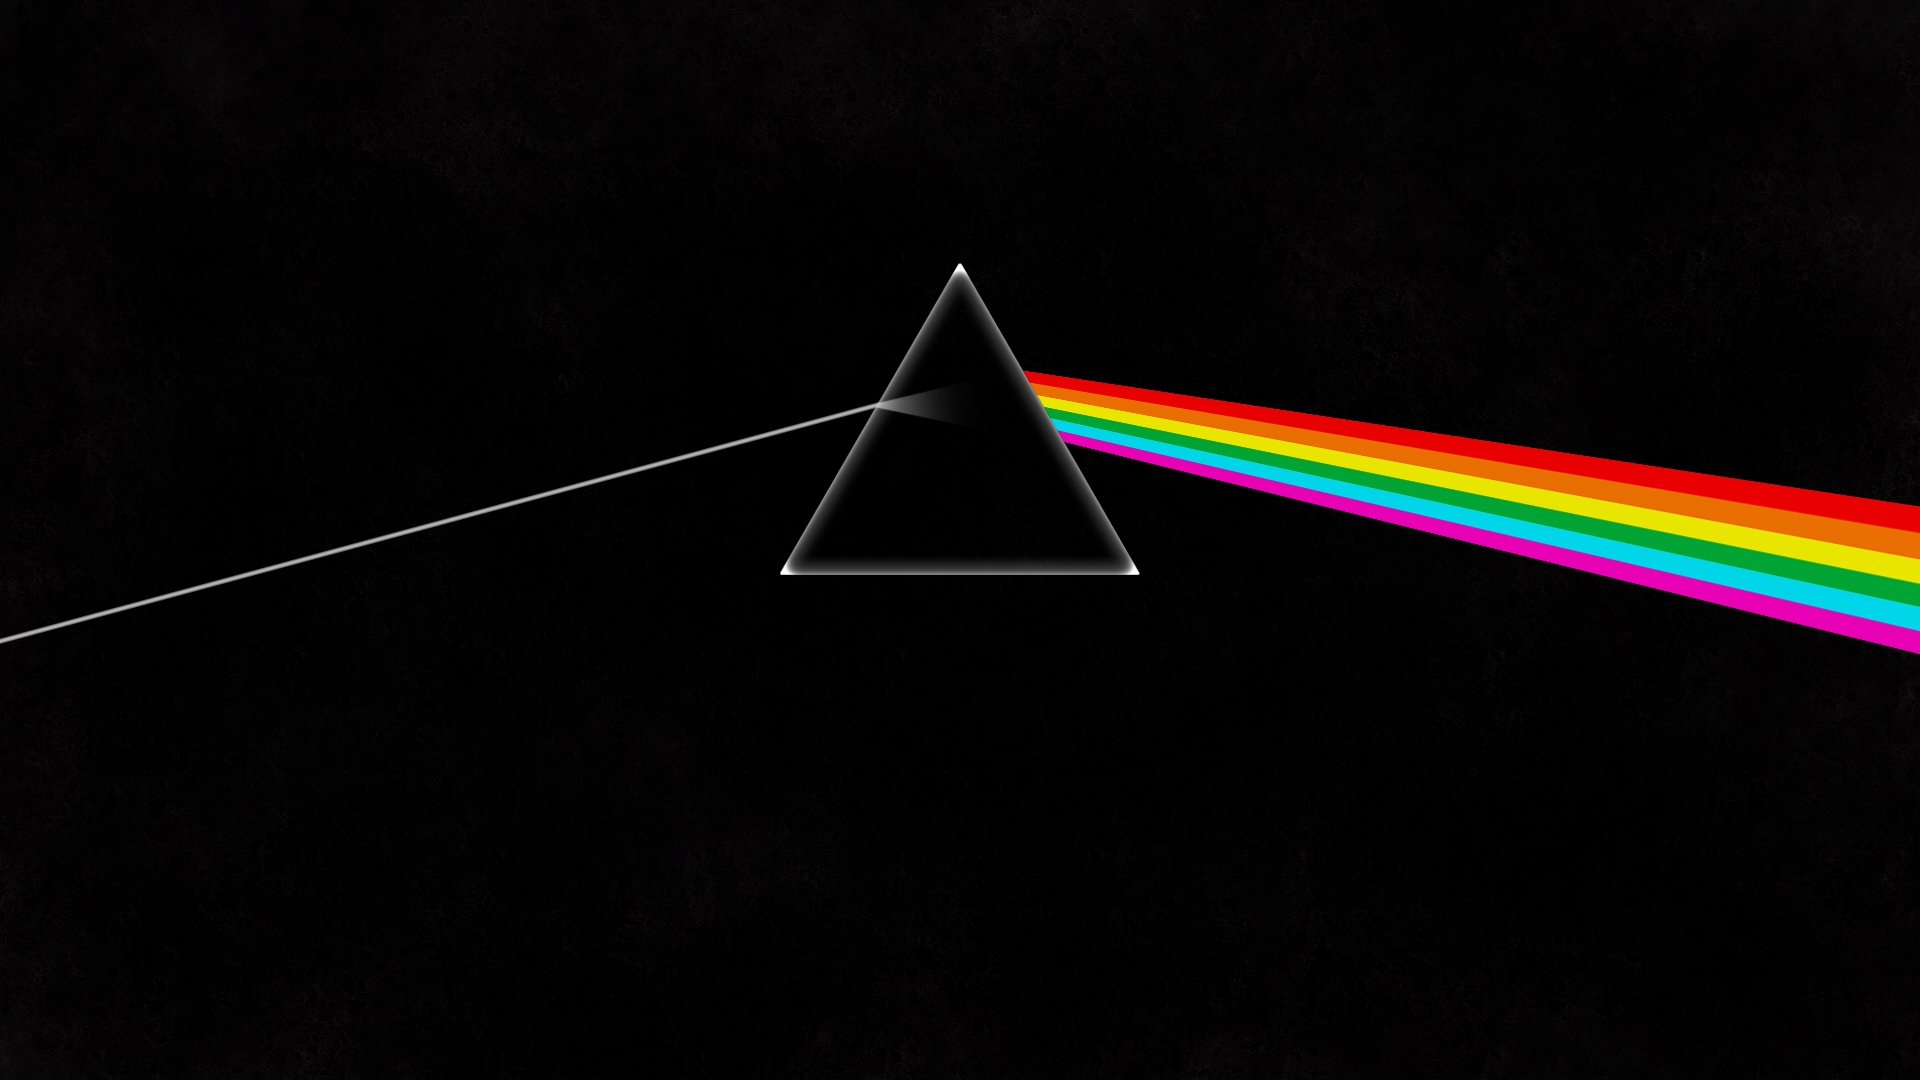 Download Pink Floyd Prism Wallpaper Gallery